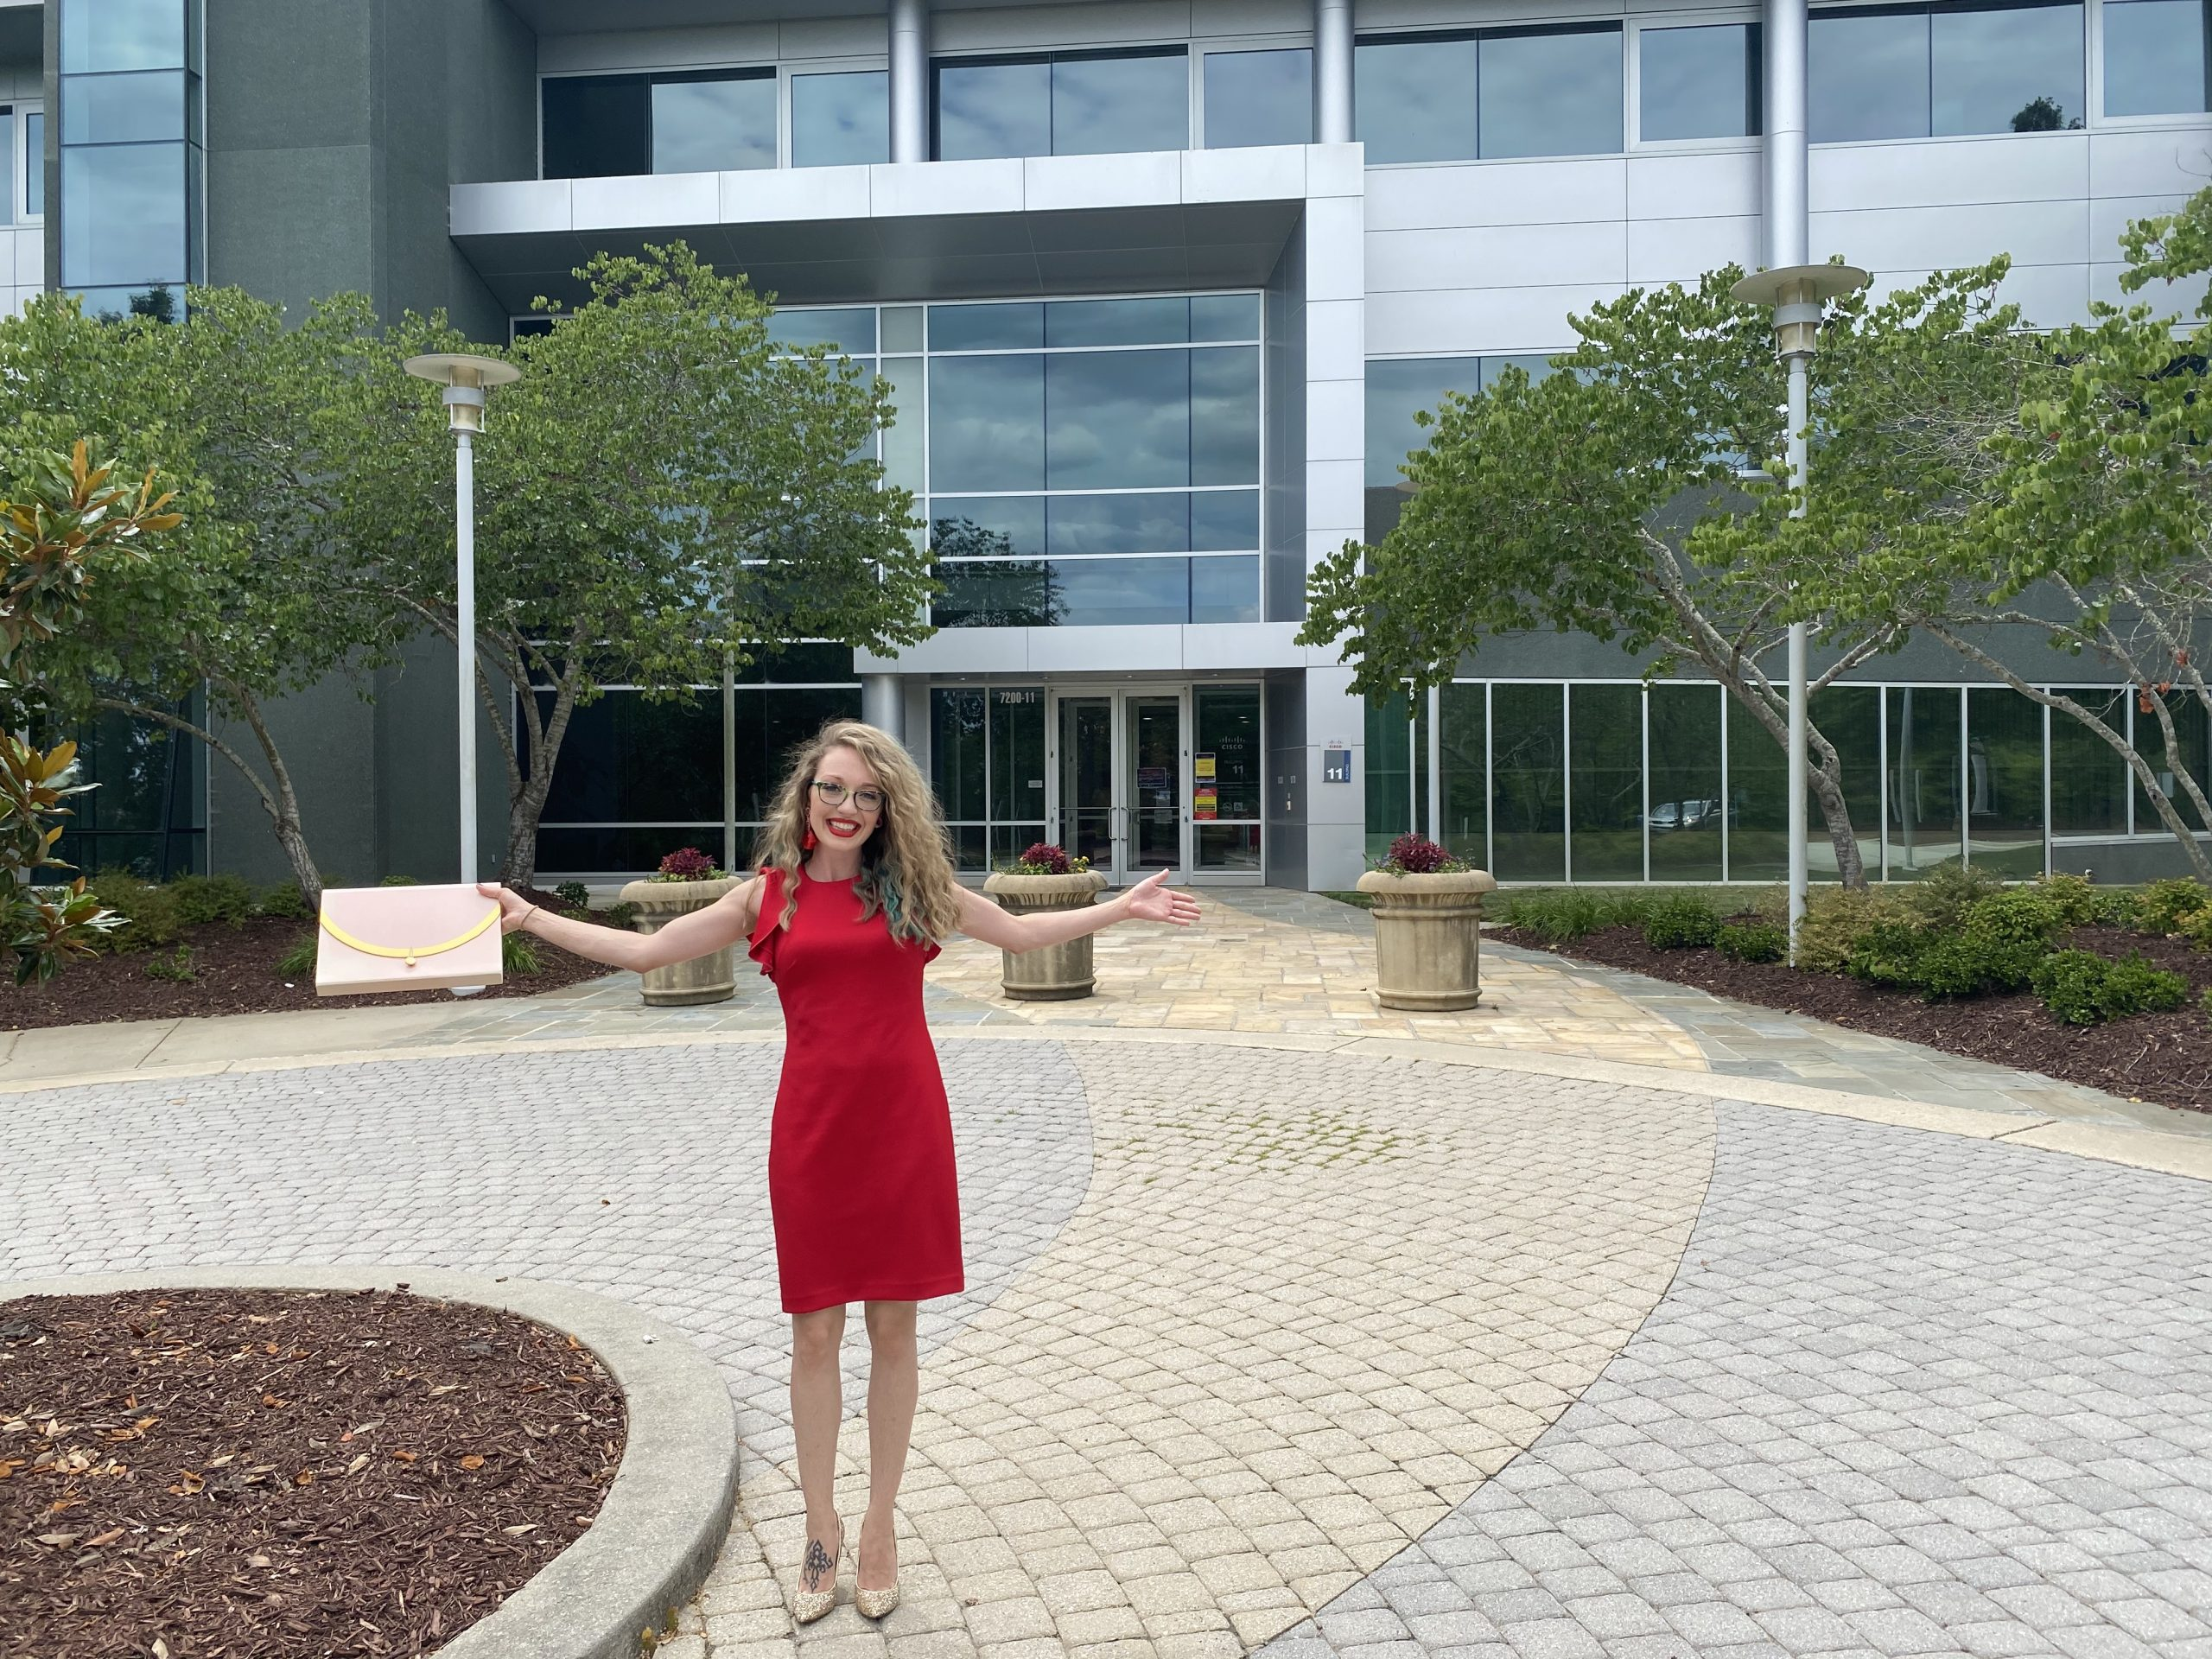 Miranda holds out her arms and shares a big smile in front of a Cisco building in RTP.